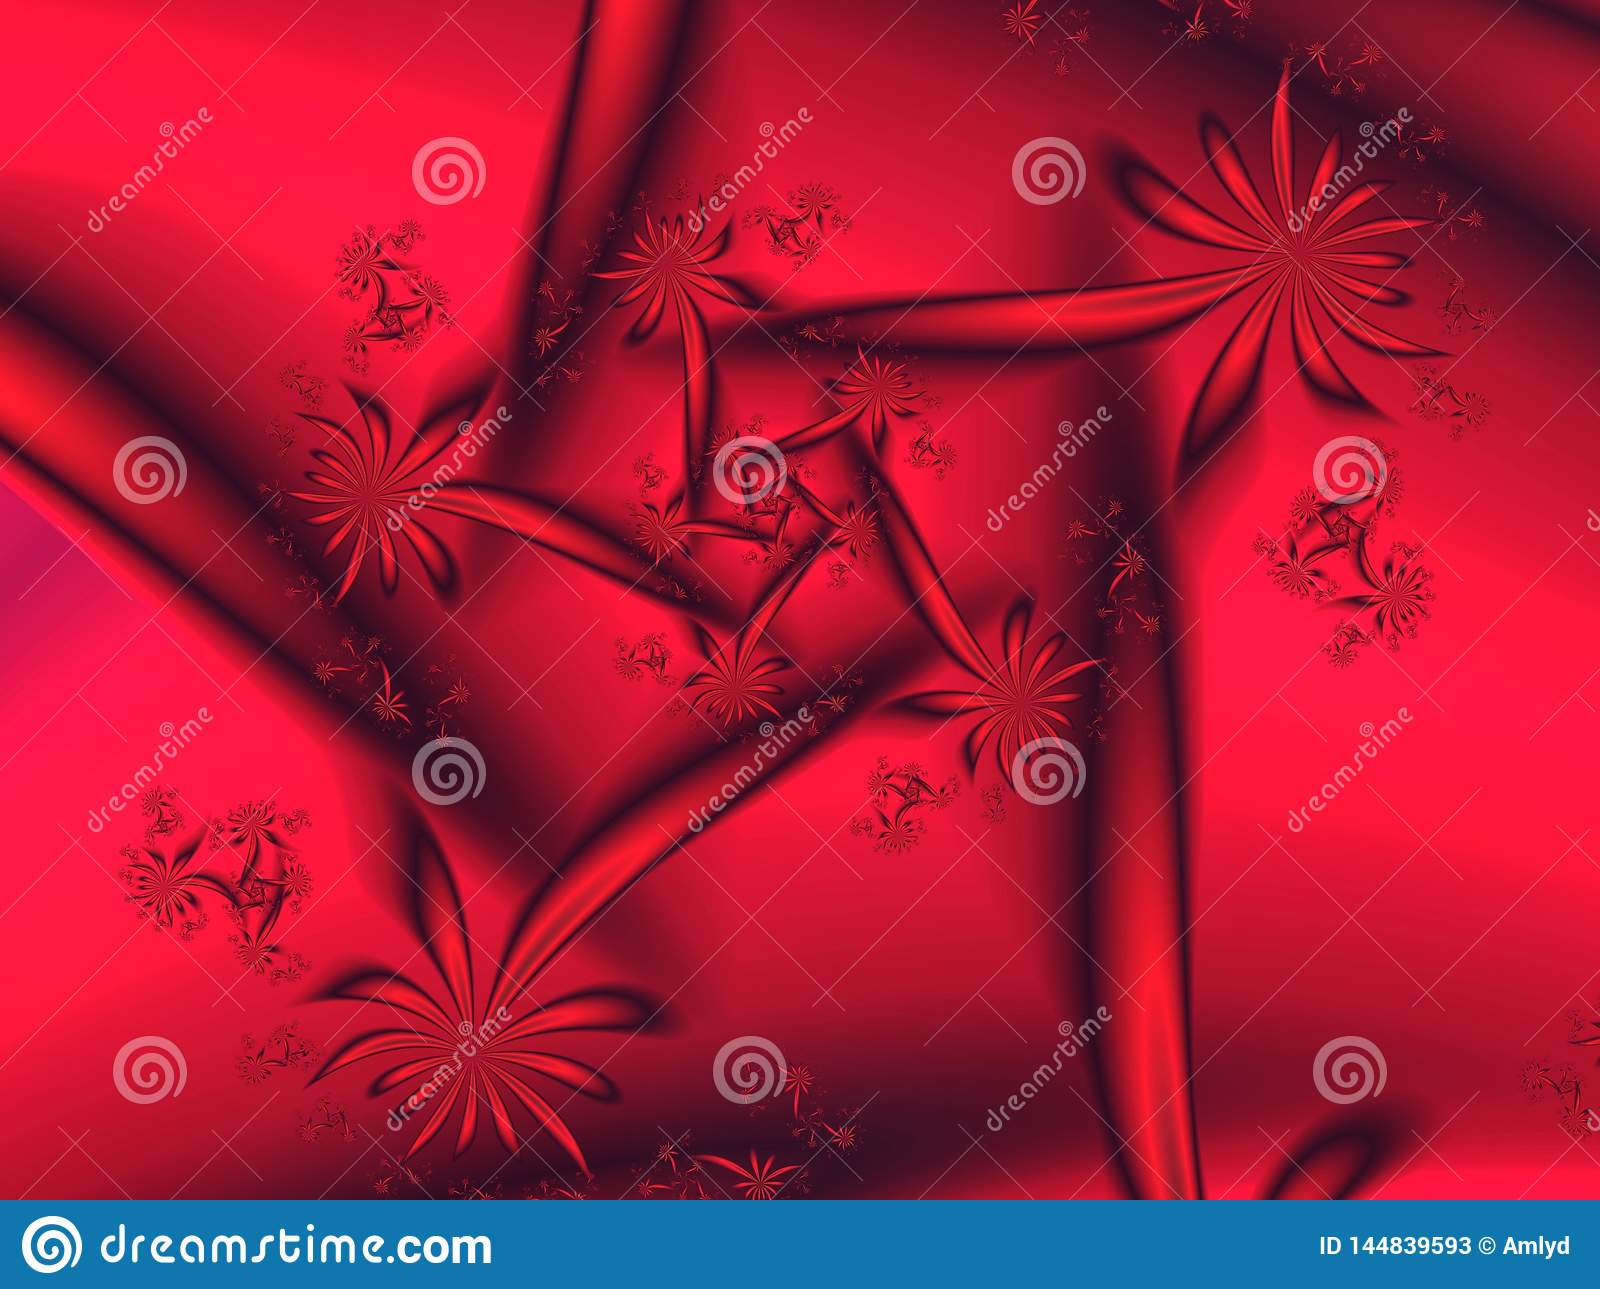 Hot Un Stock >> Hot Fireworks Display Stock Illustration Illustration Of